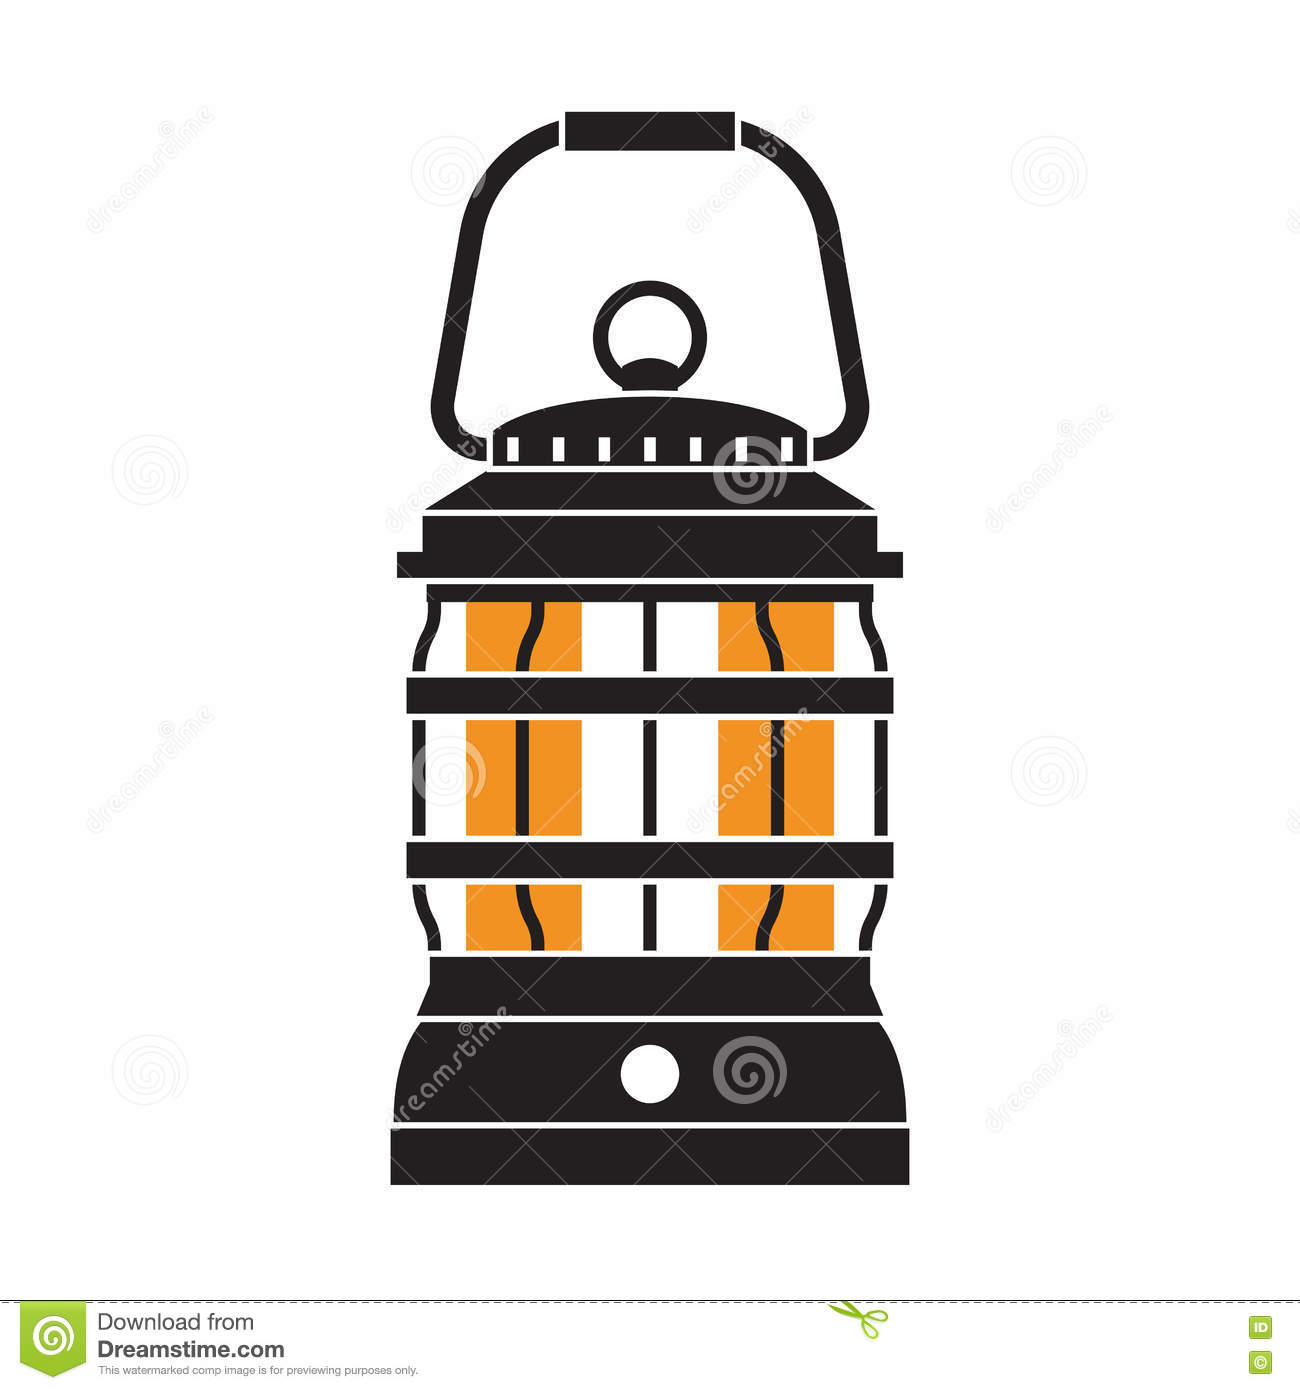 Camping Lantern Or Gas Lamp Stock Vector - Illustration of burning ... for Camping Lantern Clipart  58cpg